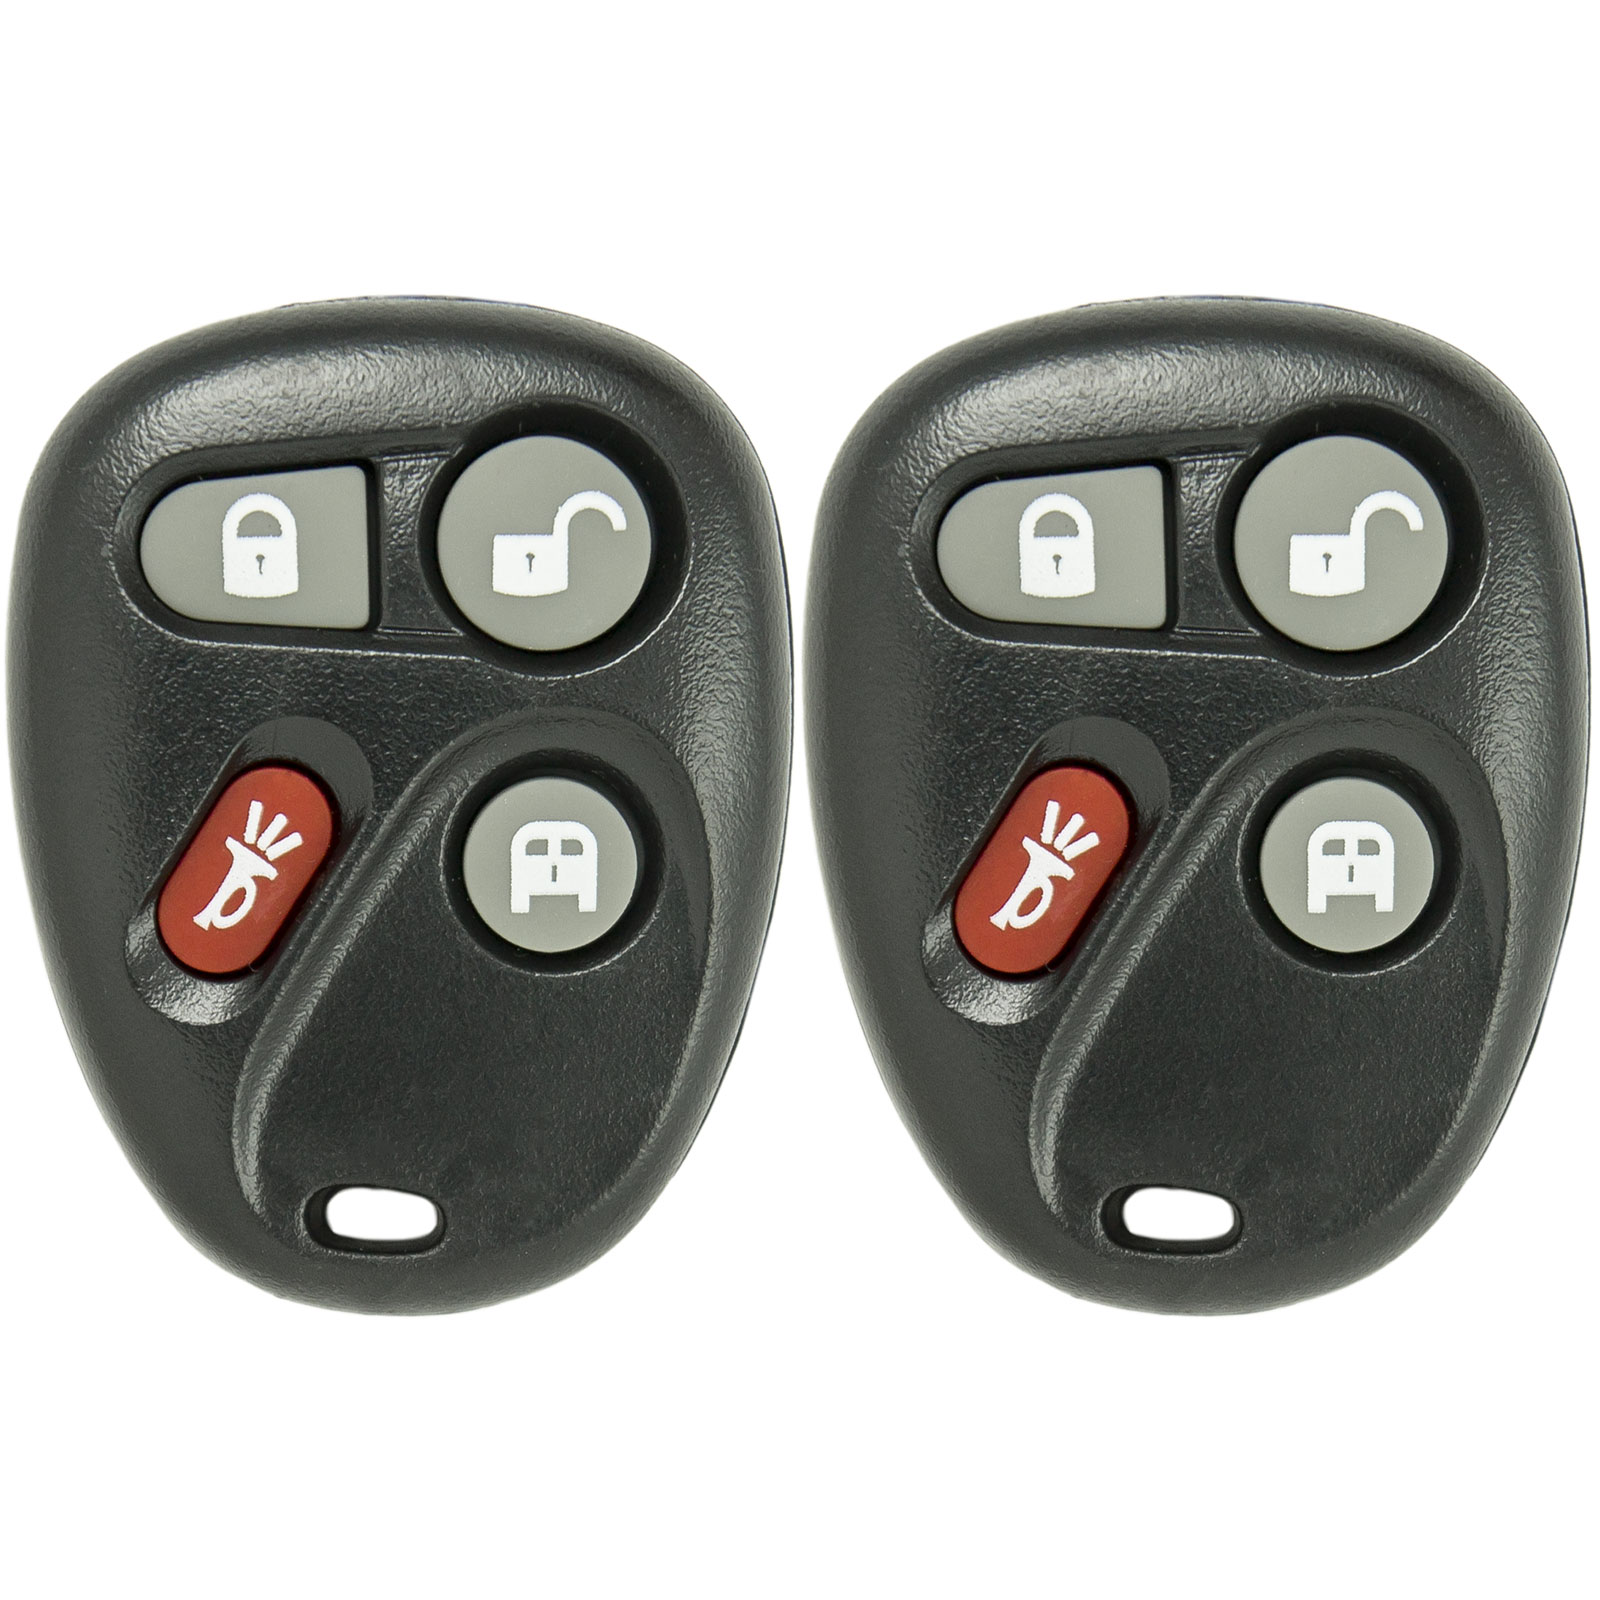 New Keyless Entry 4 Button Replacement Remote Car Key Fob for Select Express Savana That Use FCC ID KOBLEAR1XT 15752330 (2 Pack)